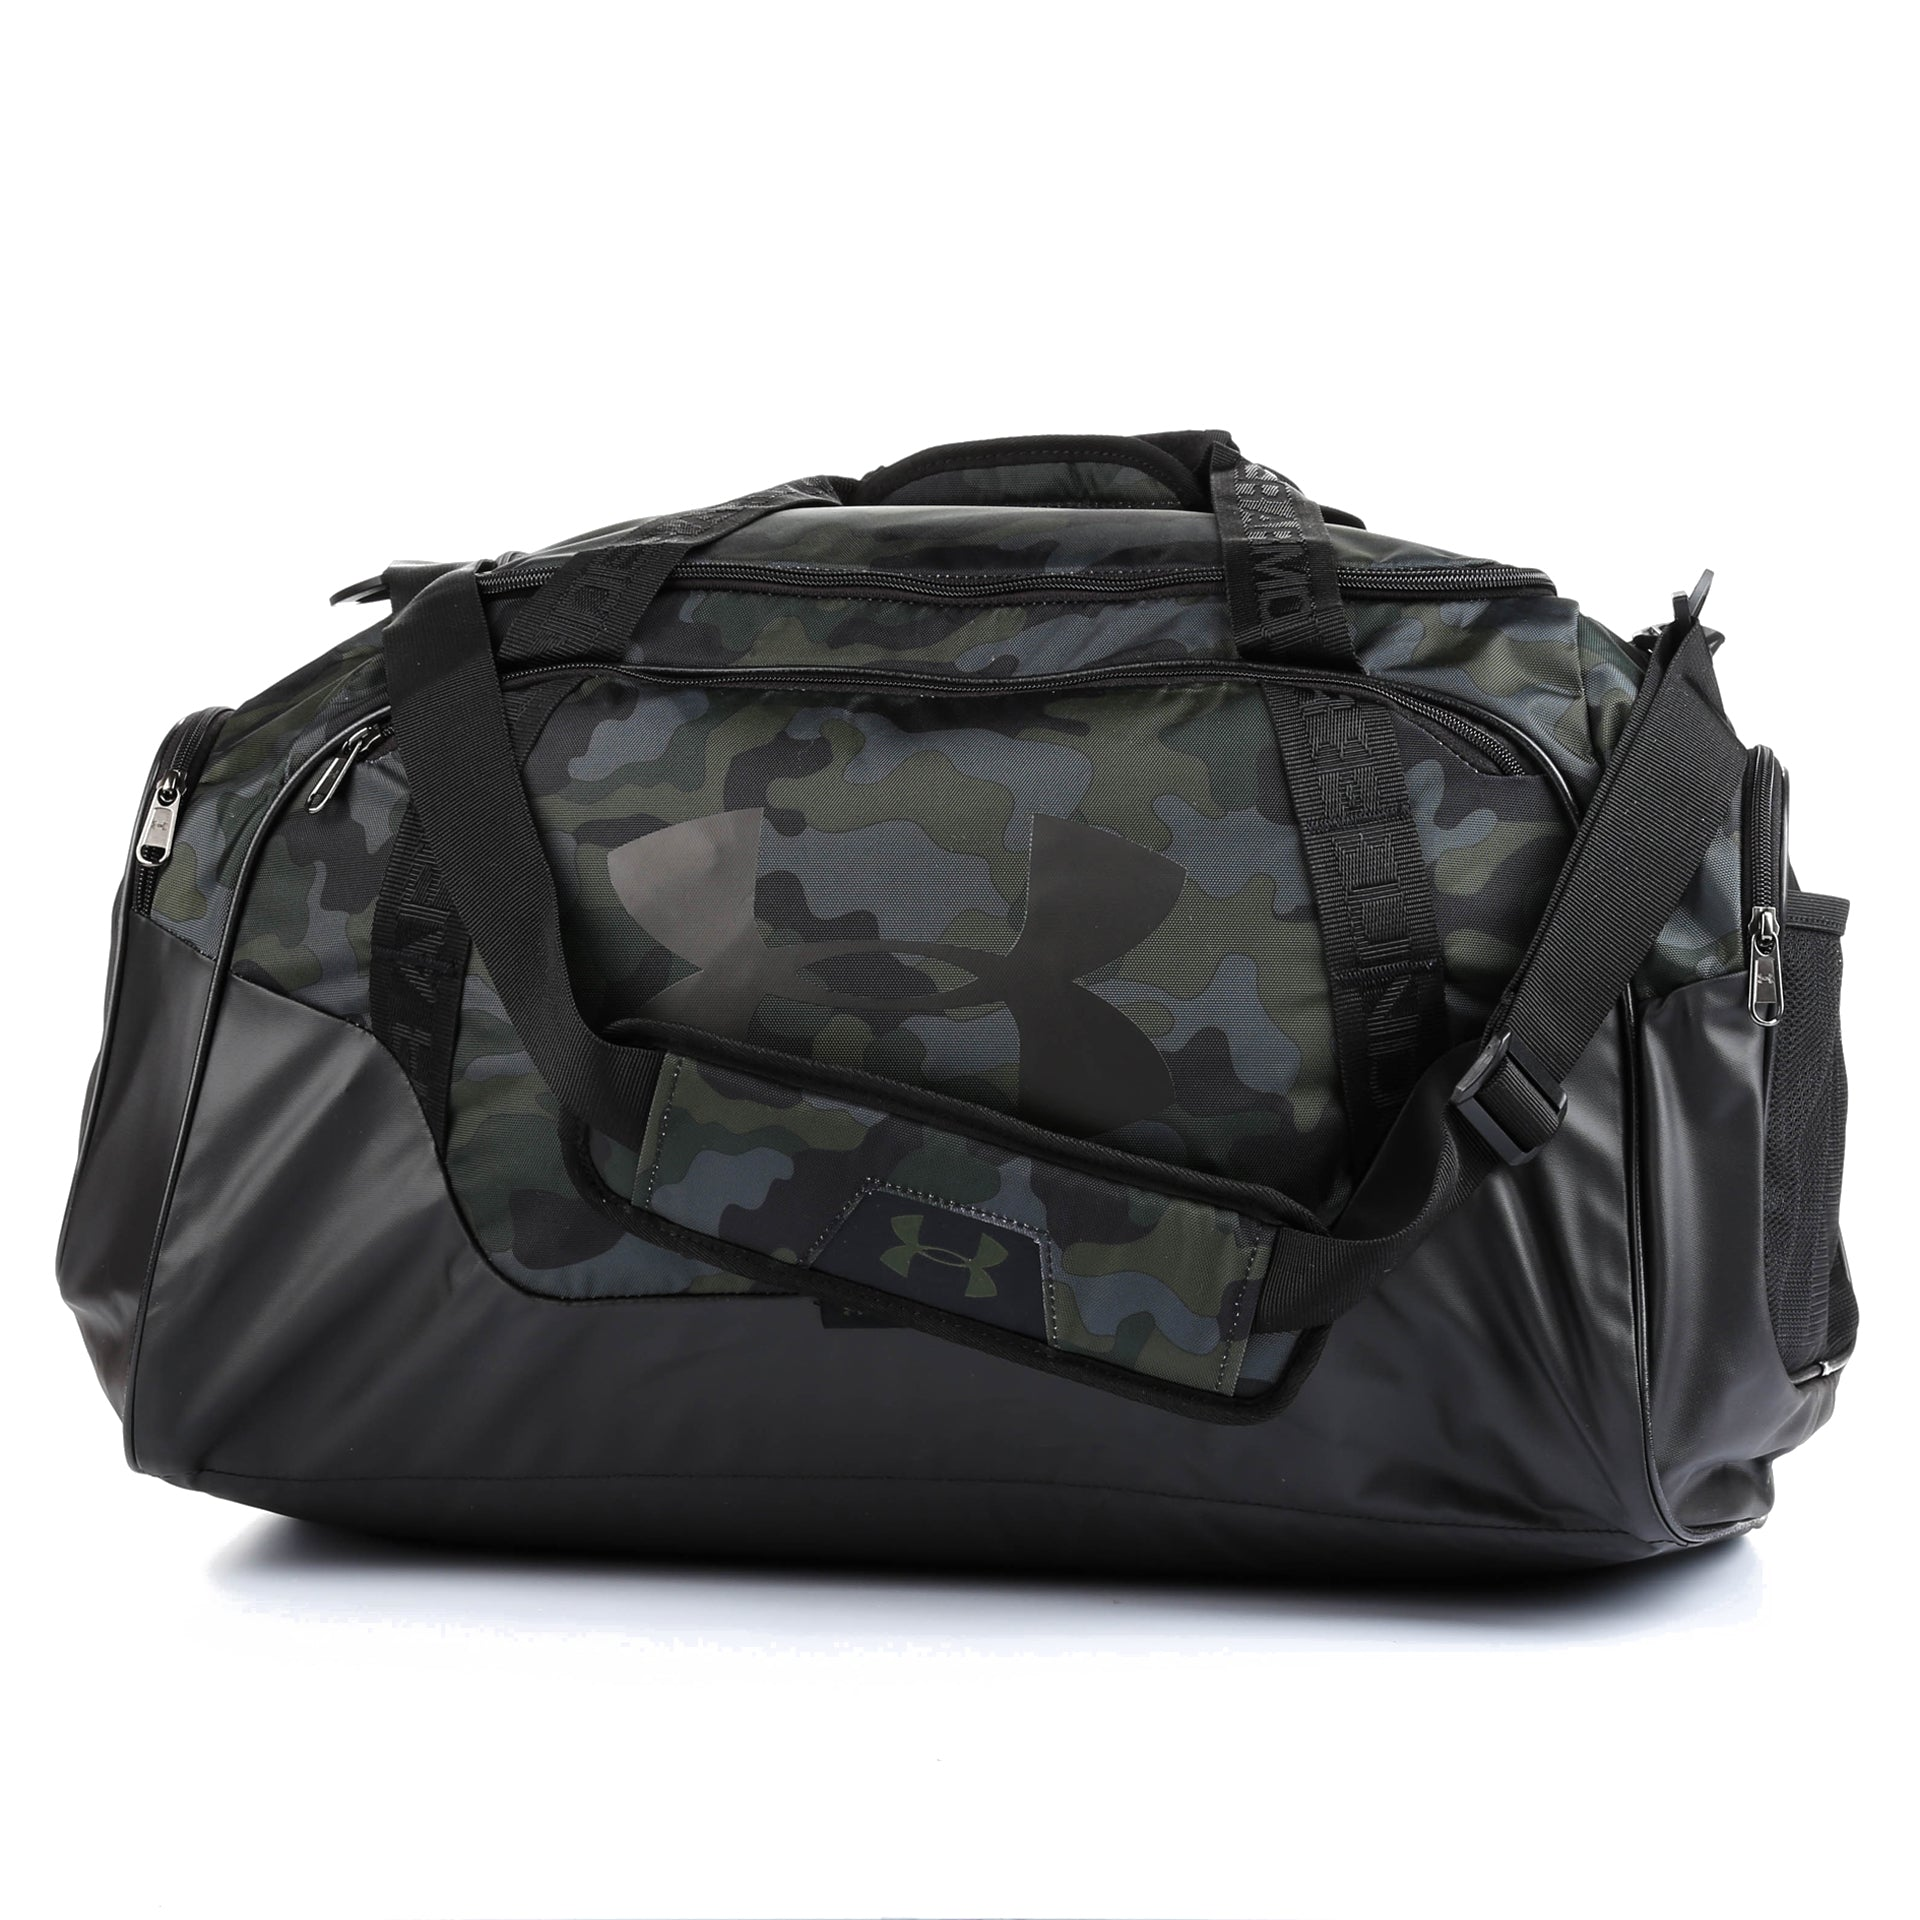 2014072e5bbf Under Armour Undeniable 3.0 Medium Duffle bag - Desert Sand   Black ...